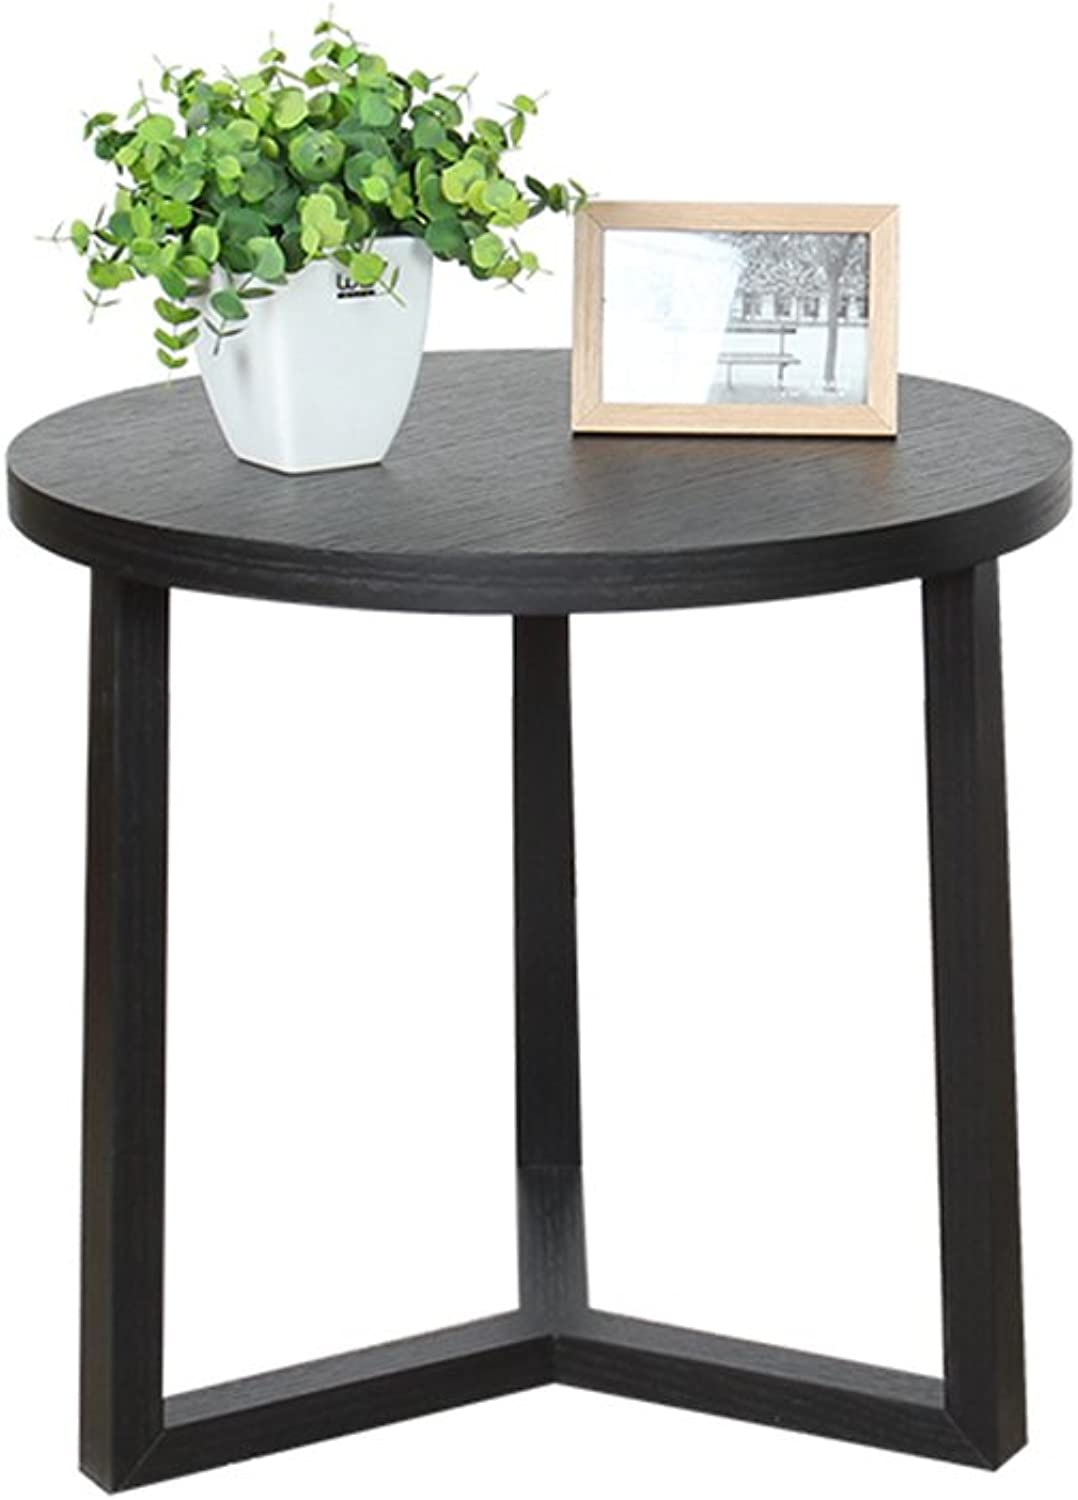 KTYXGKL Small Coffee Table Combination of Solid Wood Corner Creative Modern Minimalist Simple Living Room Side Scandinavian Sofa Round Edge Folding Table (Size    1)